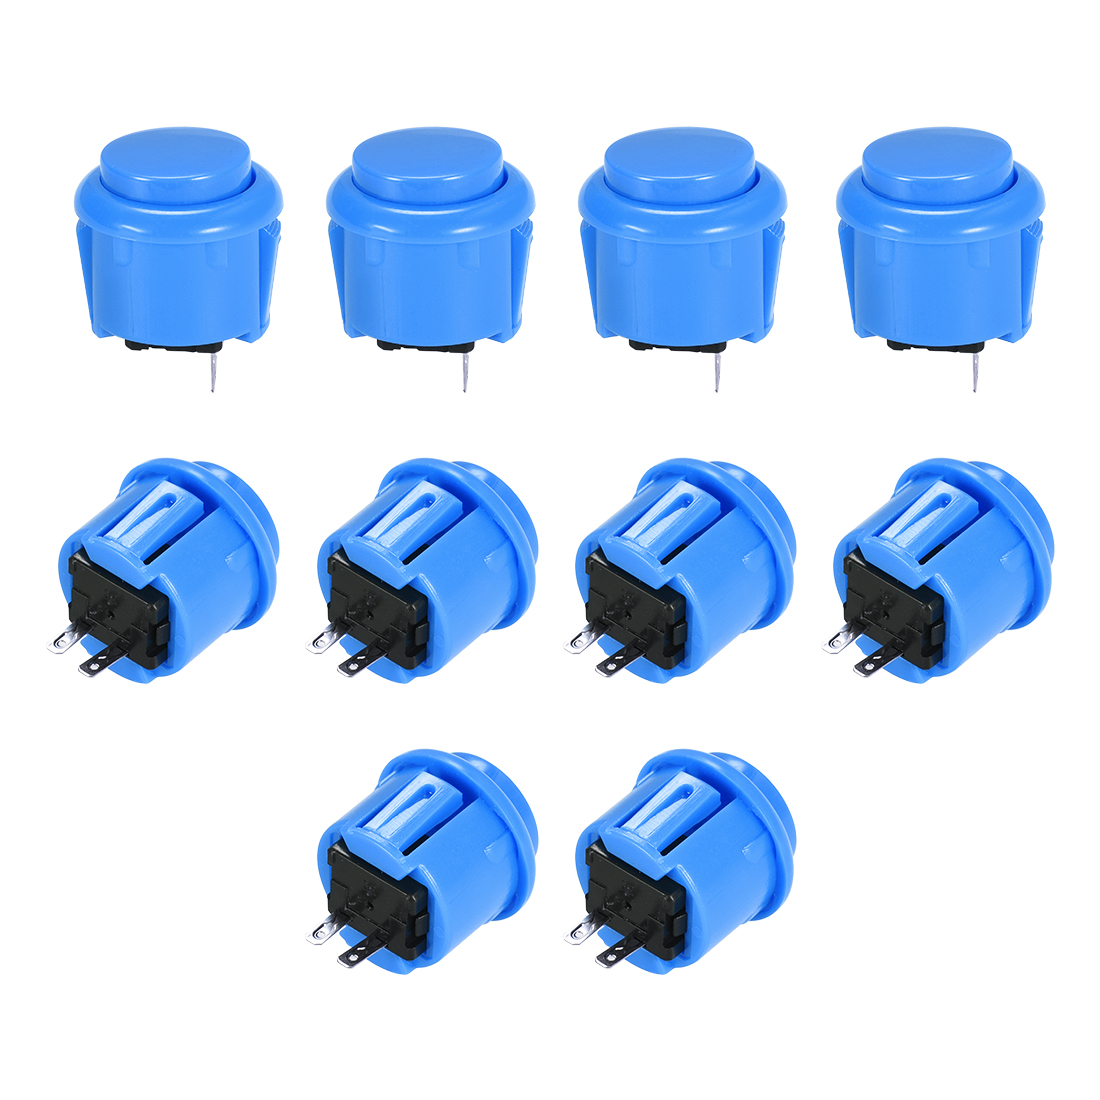 23mm Momentary Game Push Button Switch for Arcade Video Games Blue 10pcs